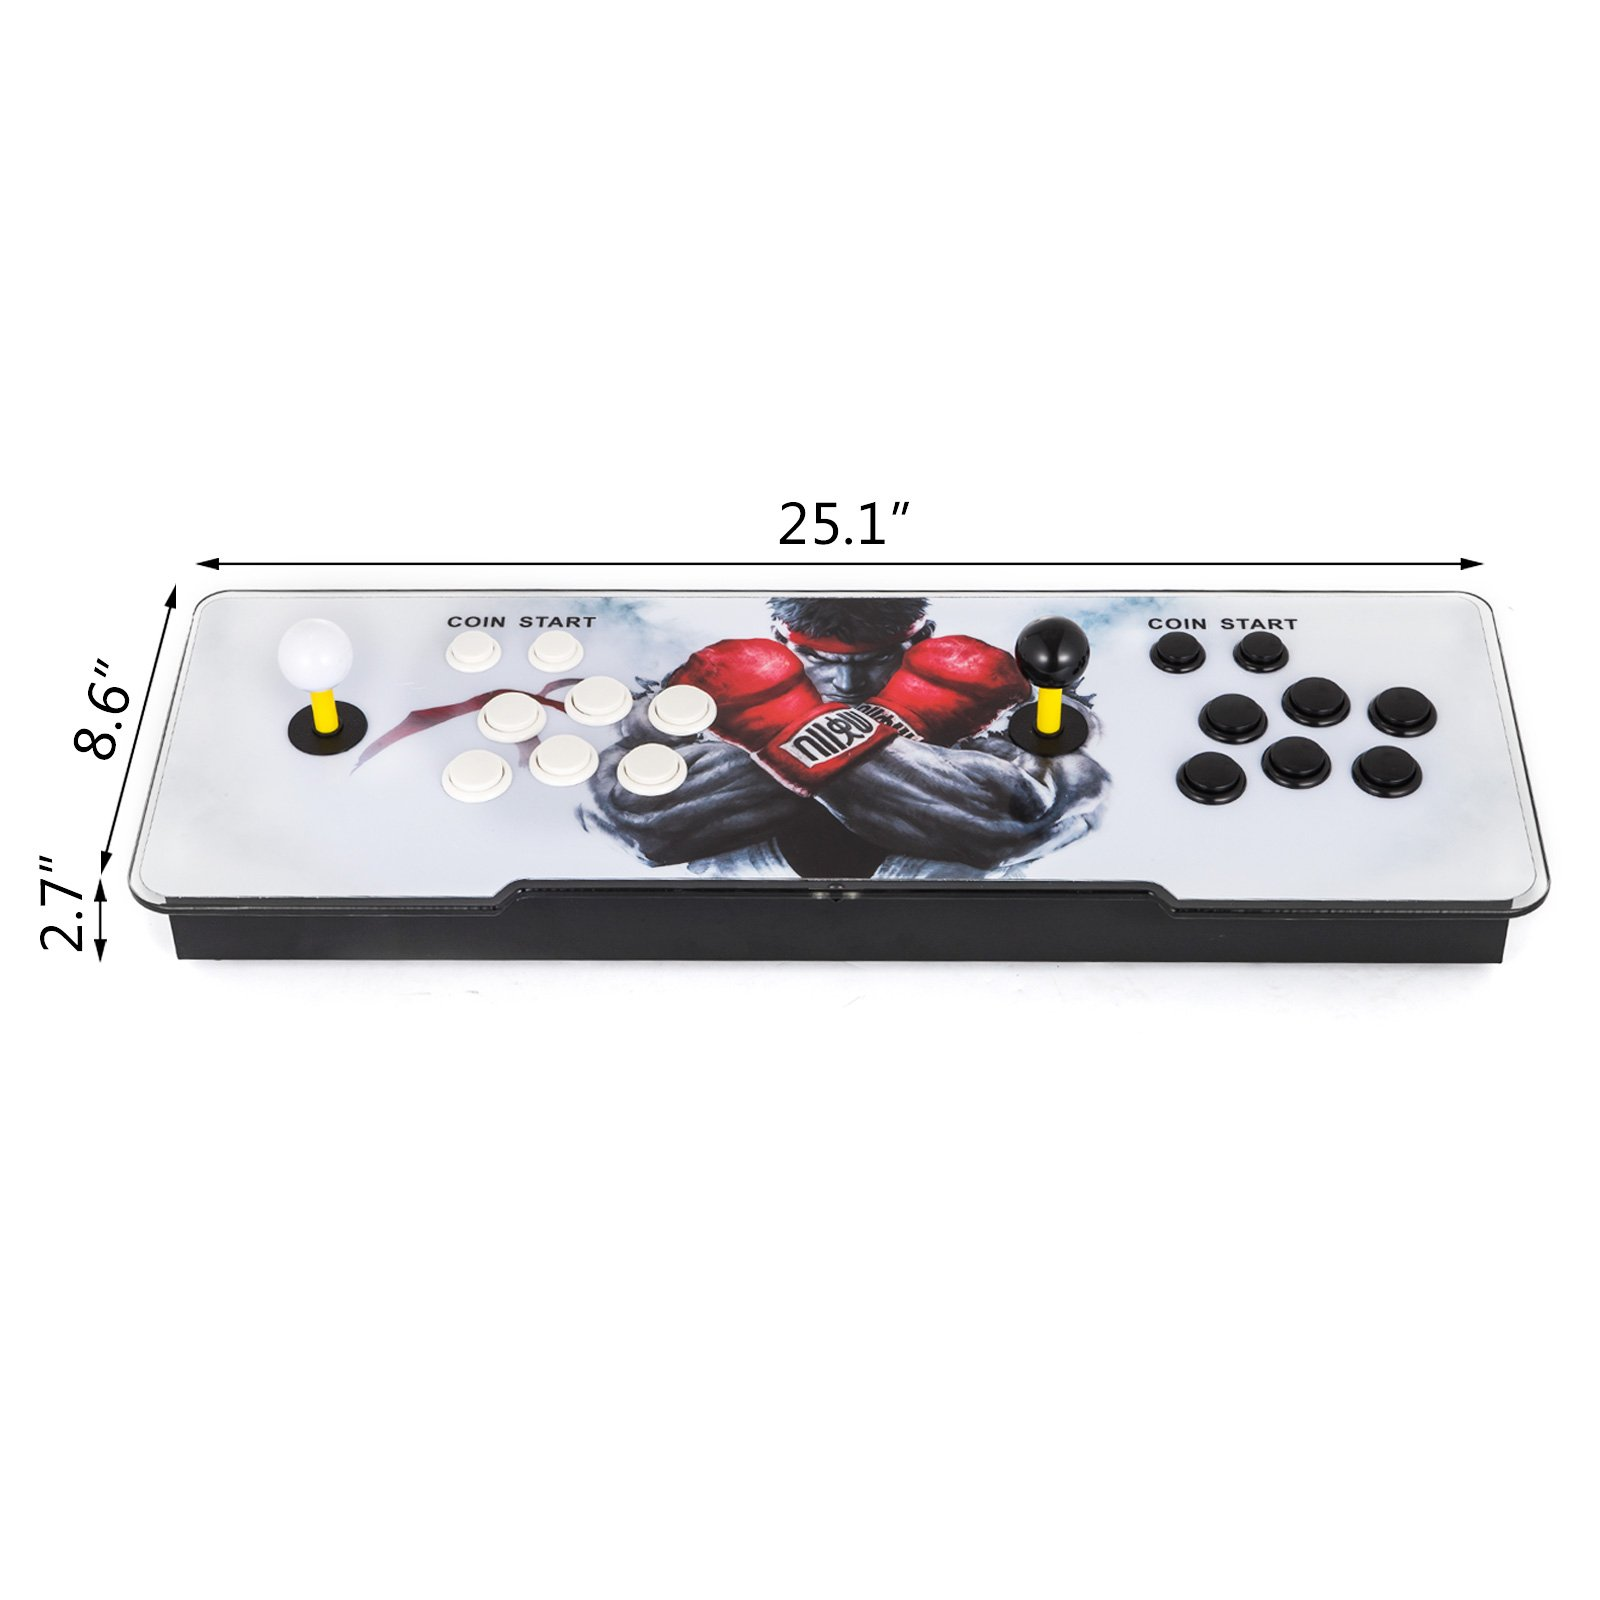 Happybuy Video Game Console, Arcade Machine 1500 Classic Games, 2 Players Pandora's box 5S multiplayer home Arcade Console 1500 Games All in 1 NON-JAMMA PCB Double Stick Newest Design Buttons Power HD by Happybuy (Image #3)